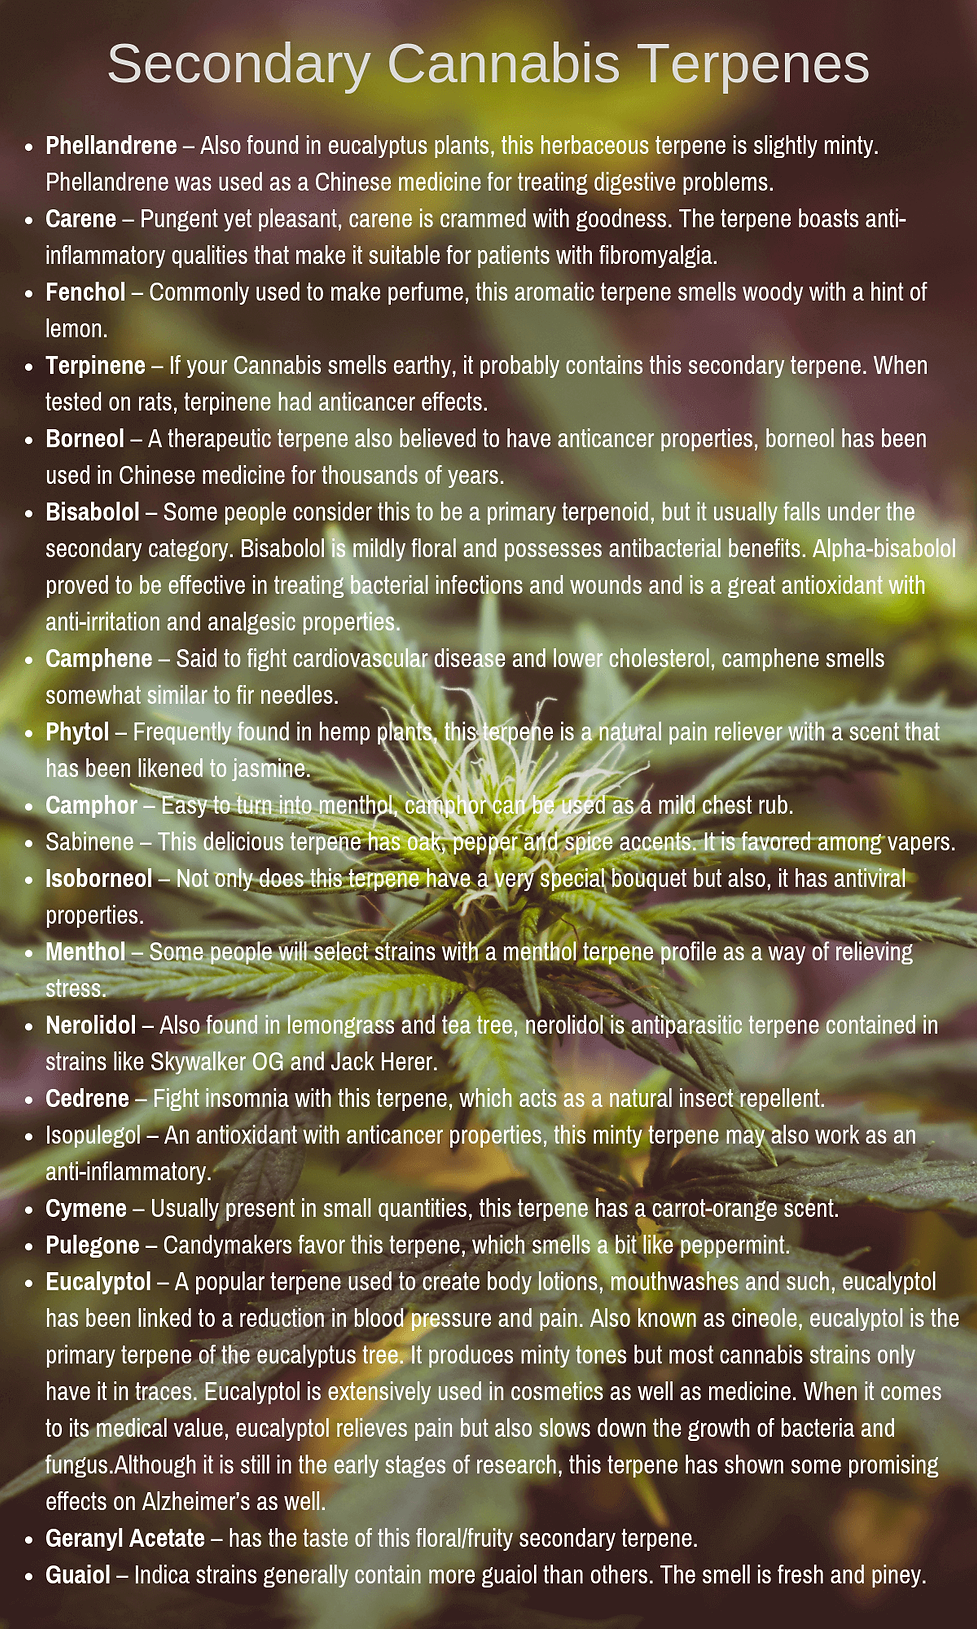 Secondary-cannabis-terpenes-1.png